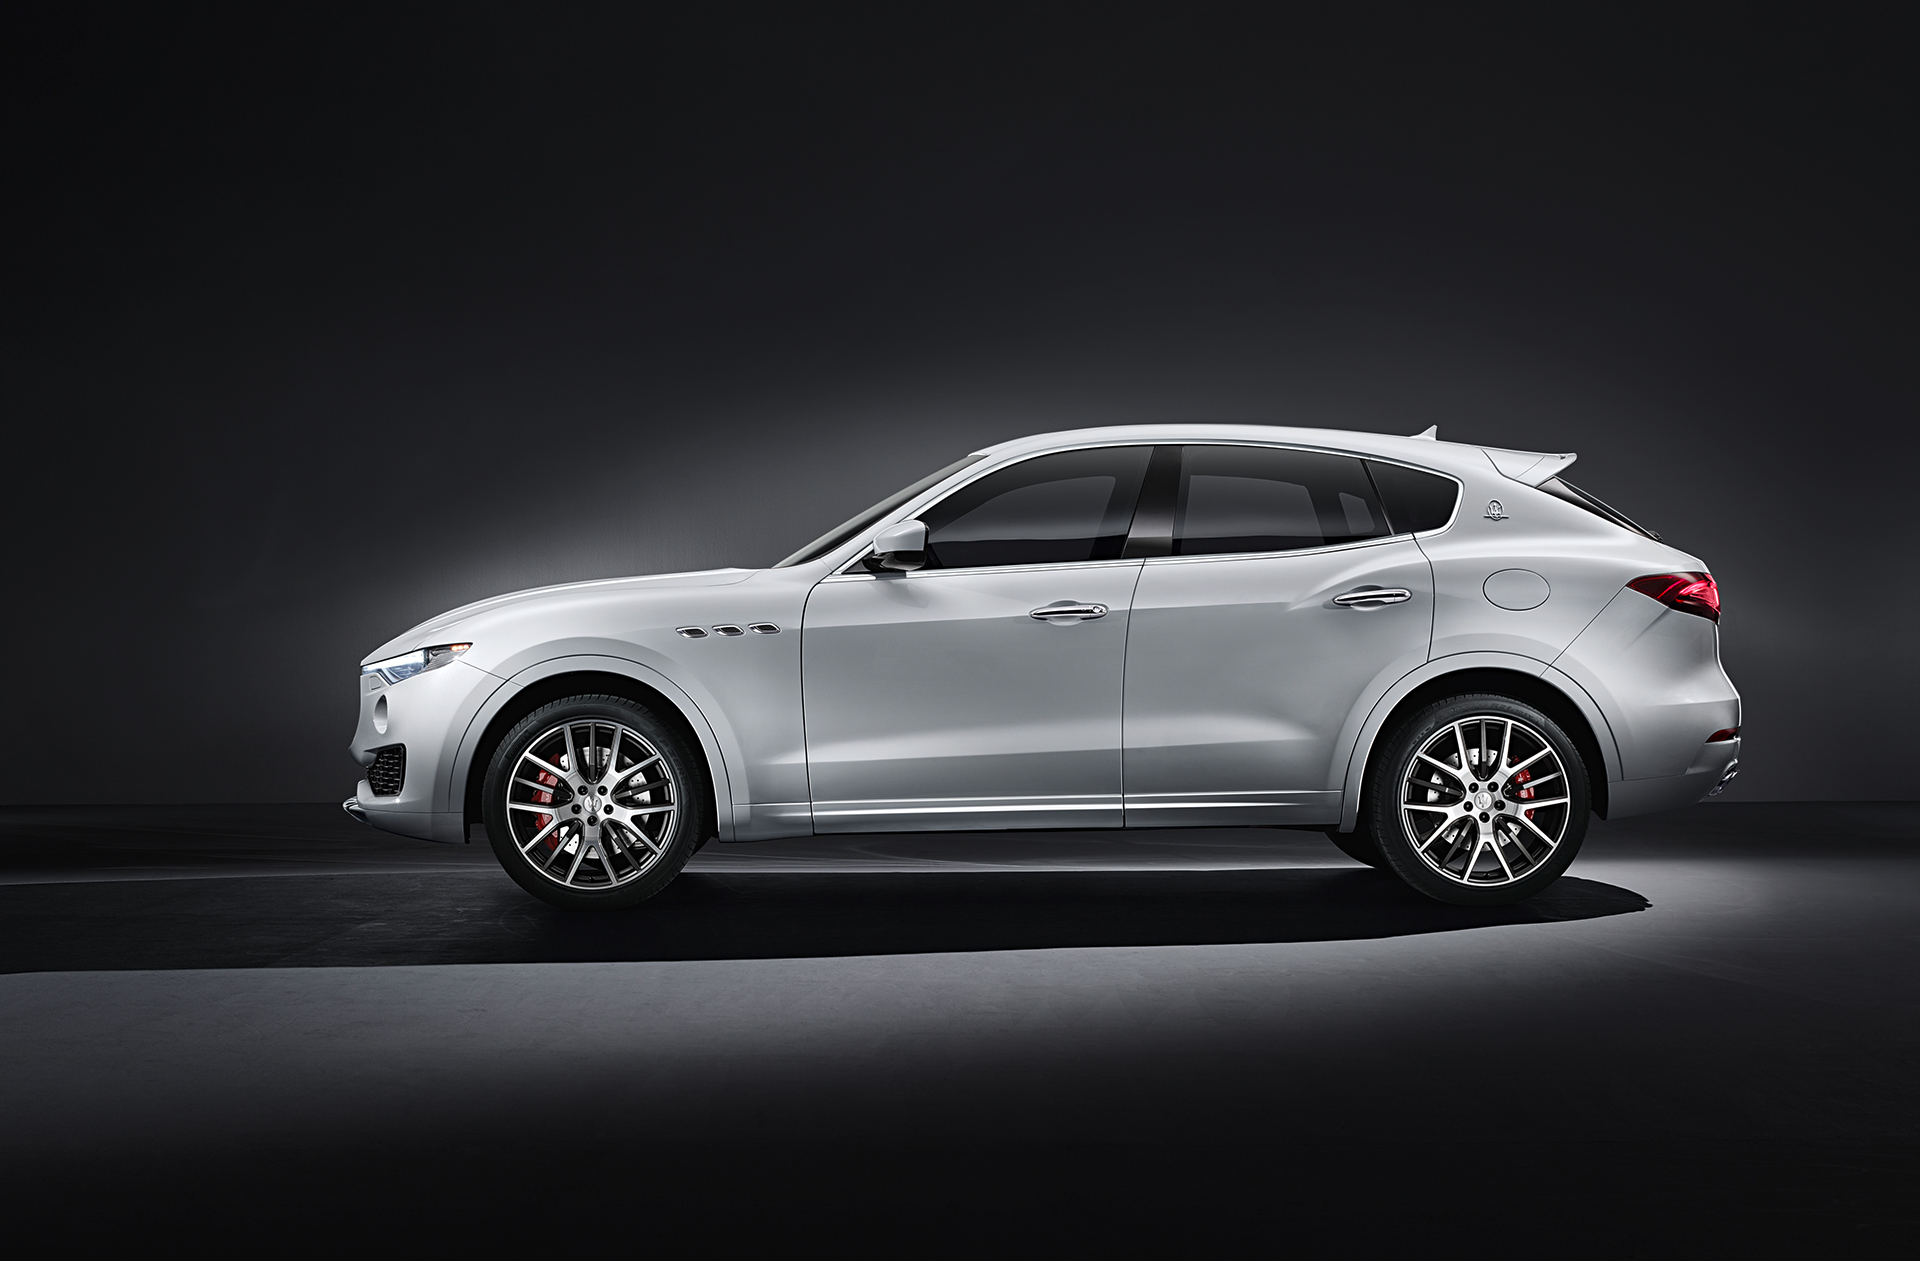 Maserati Levante - 2016 - side-face / profil